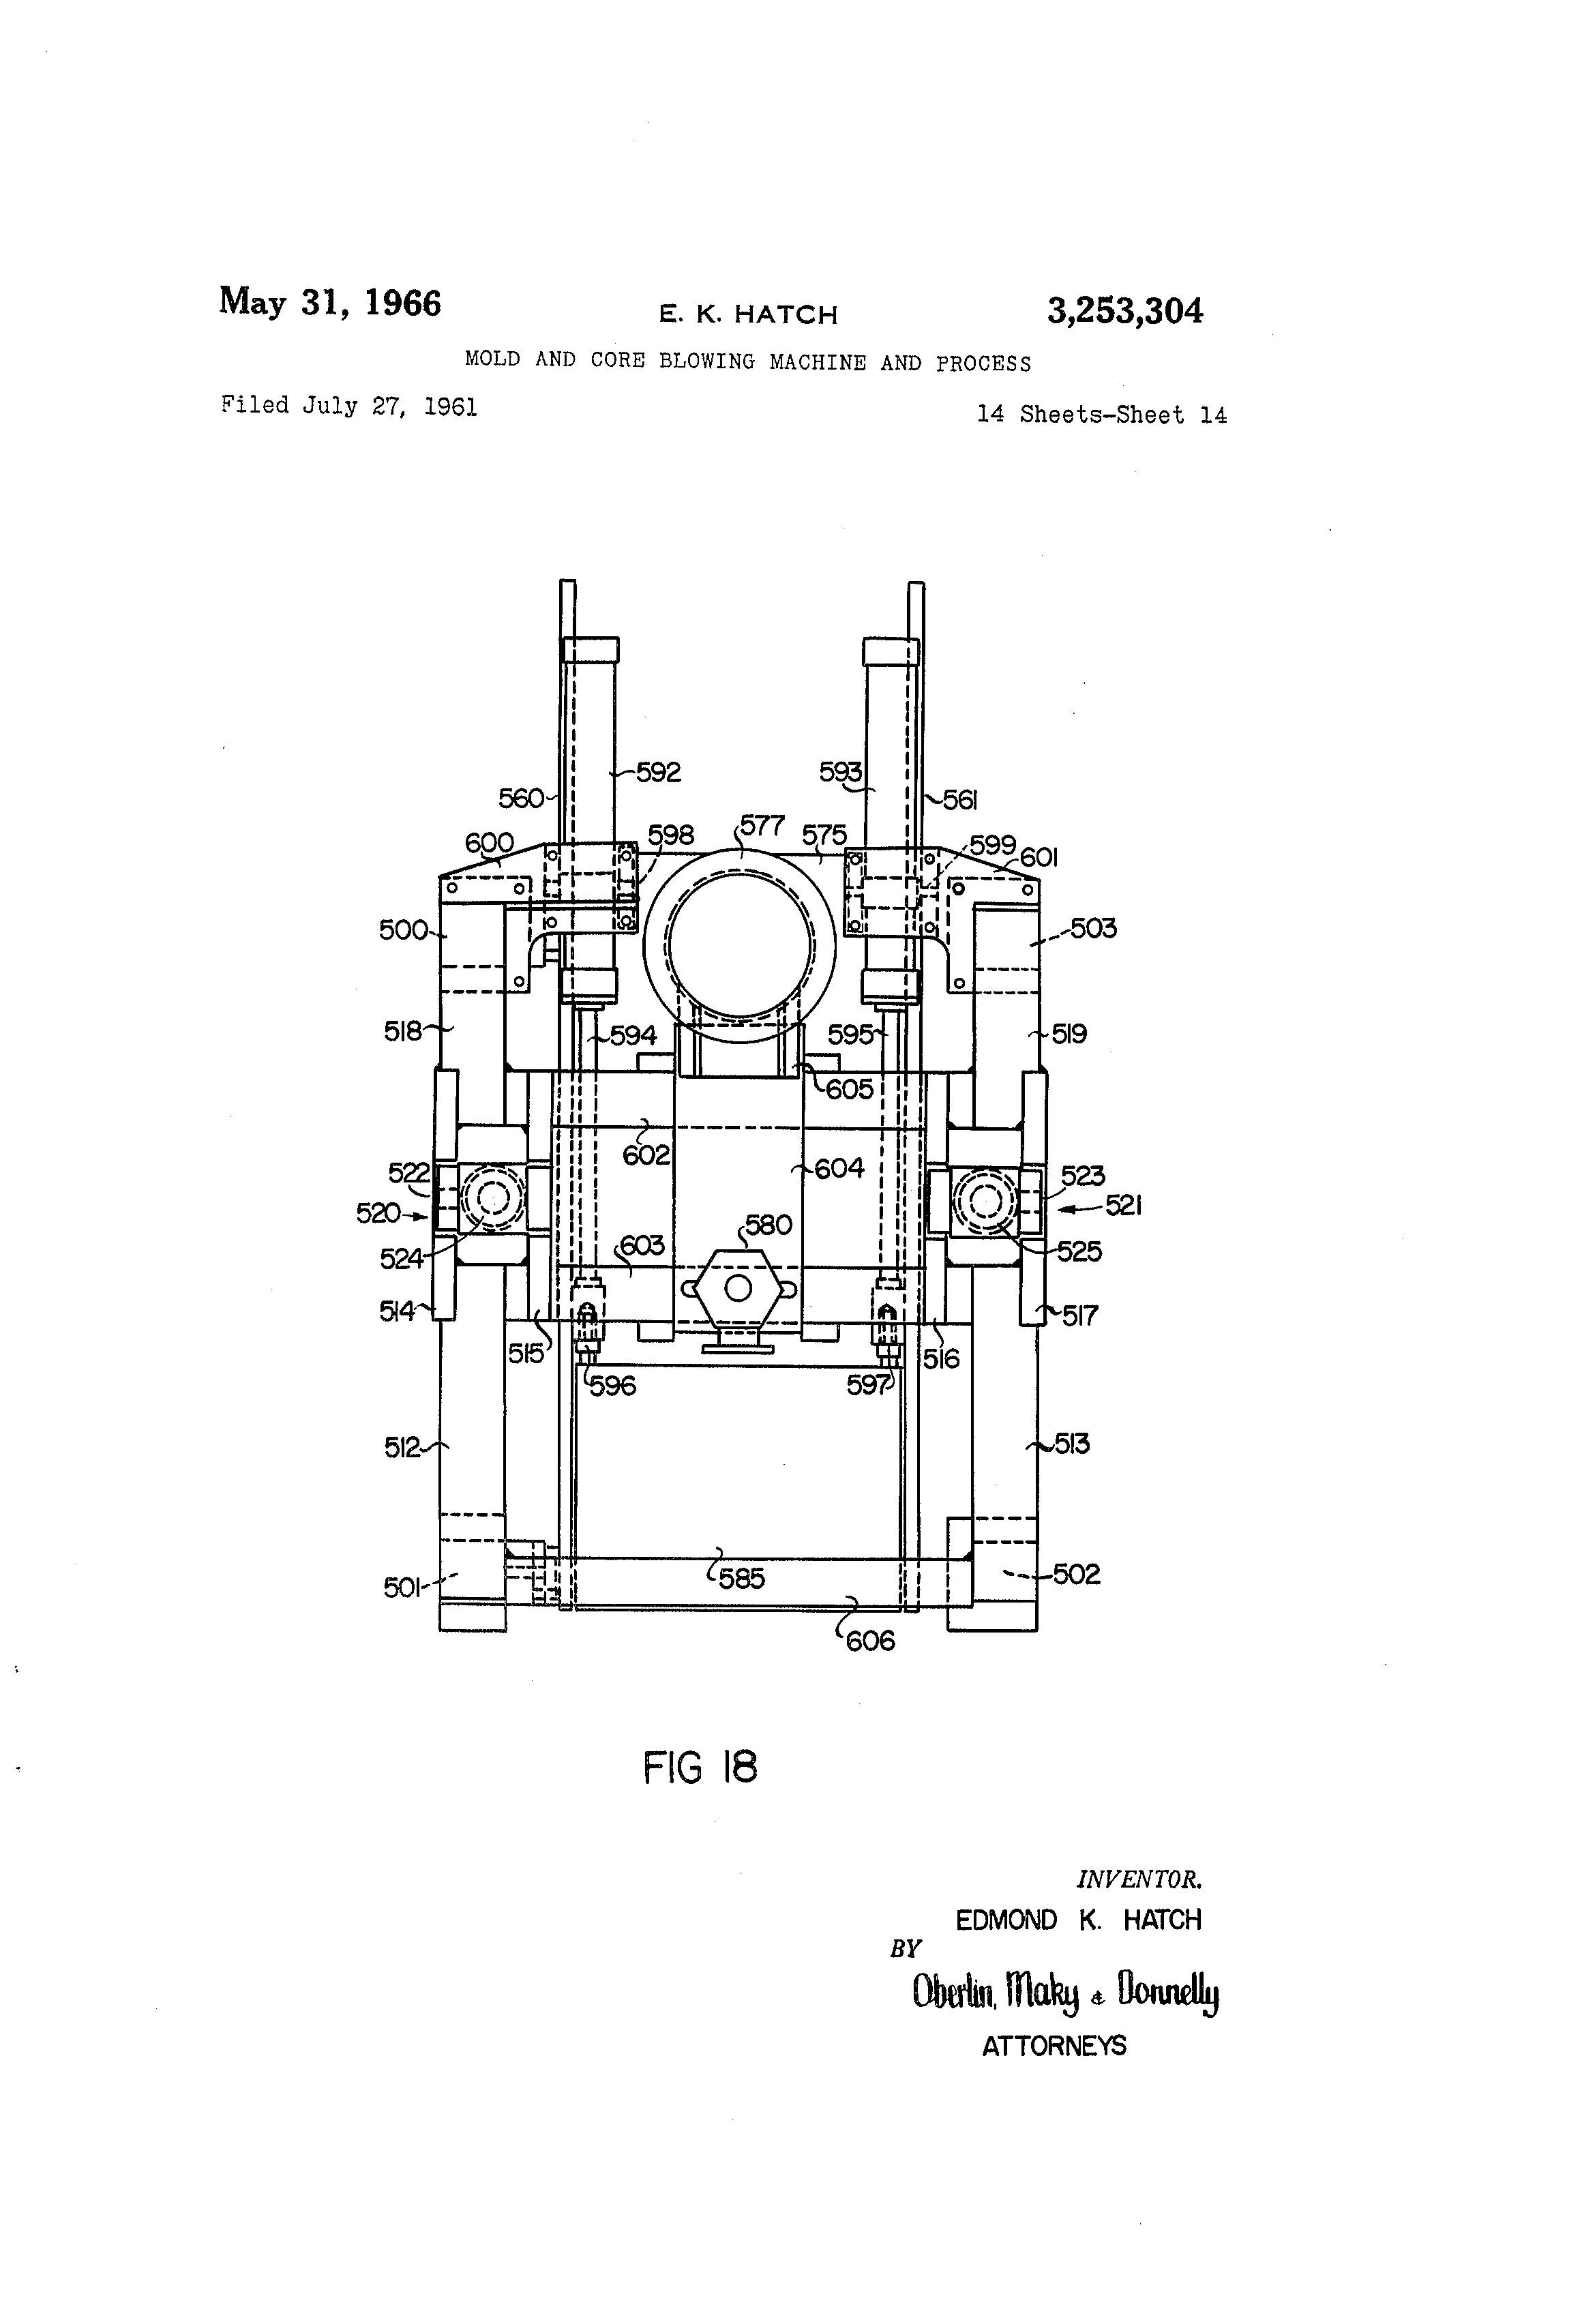 US3253304 13 patent us3253304 mold and core blowing machine and process  at sewacar.co